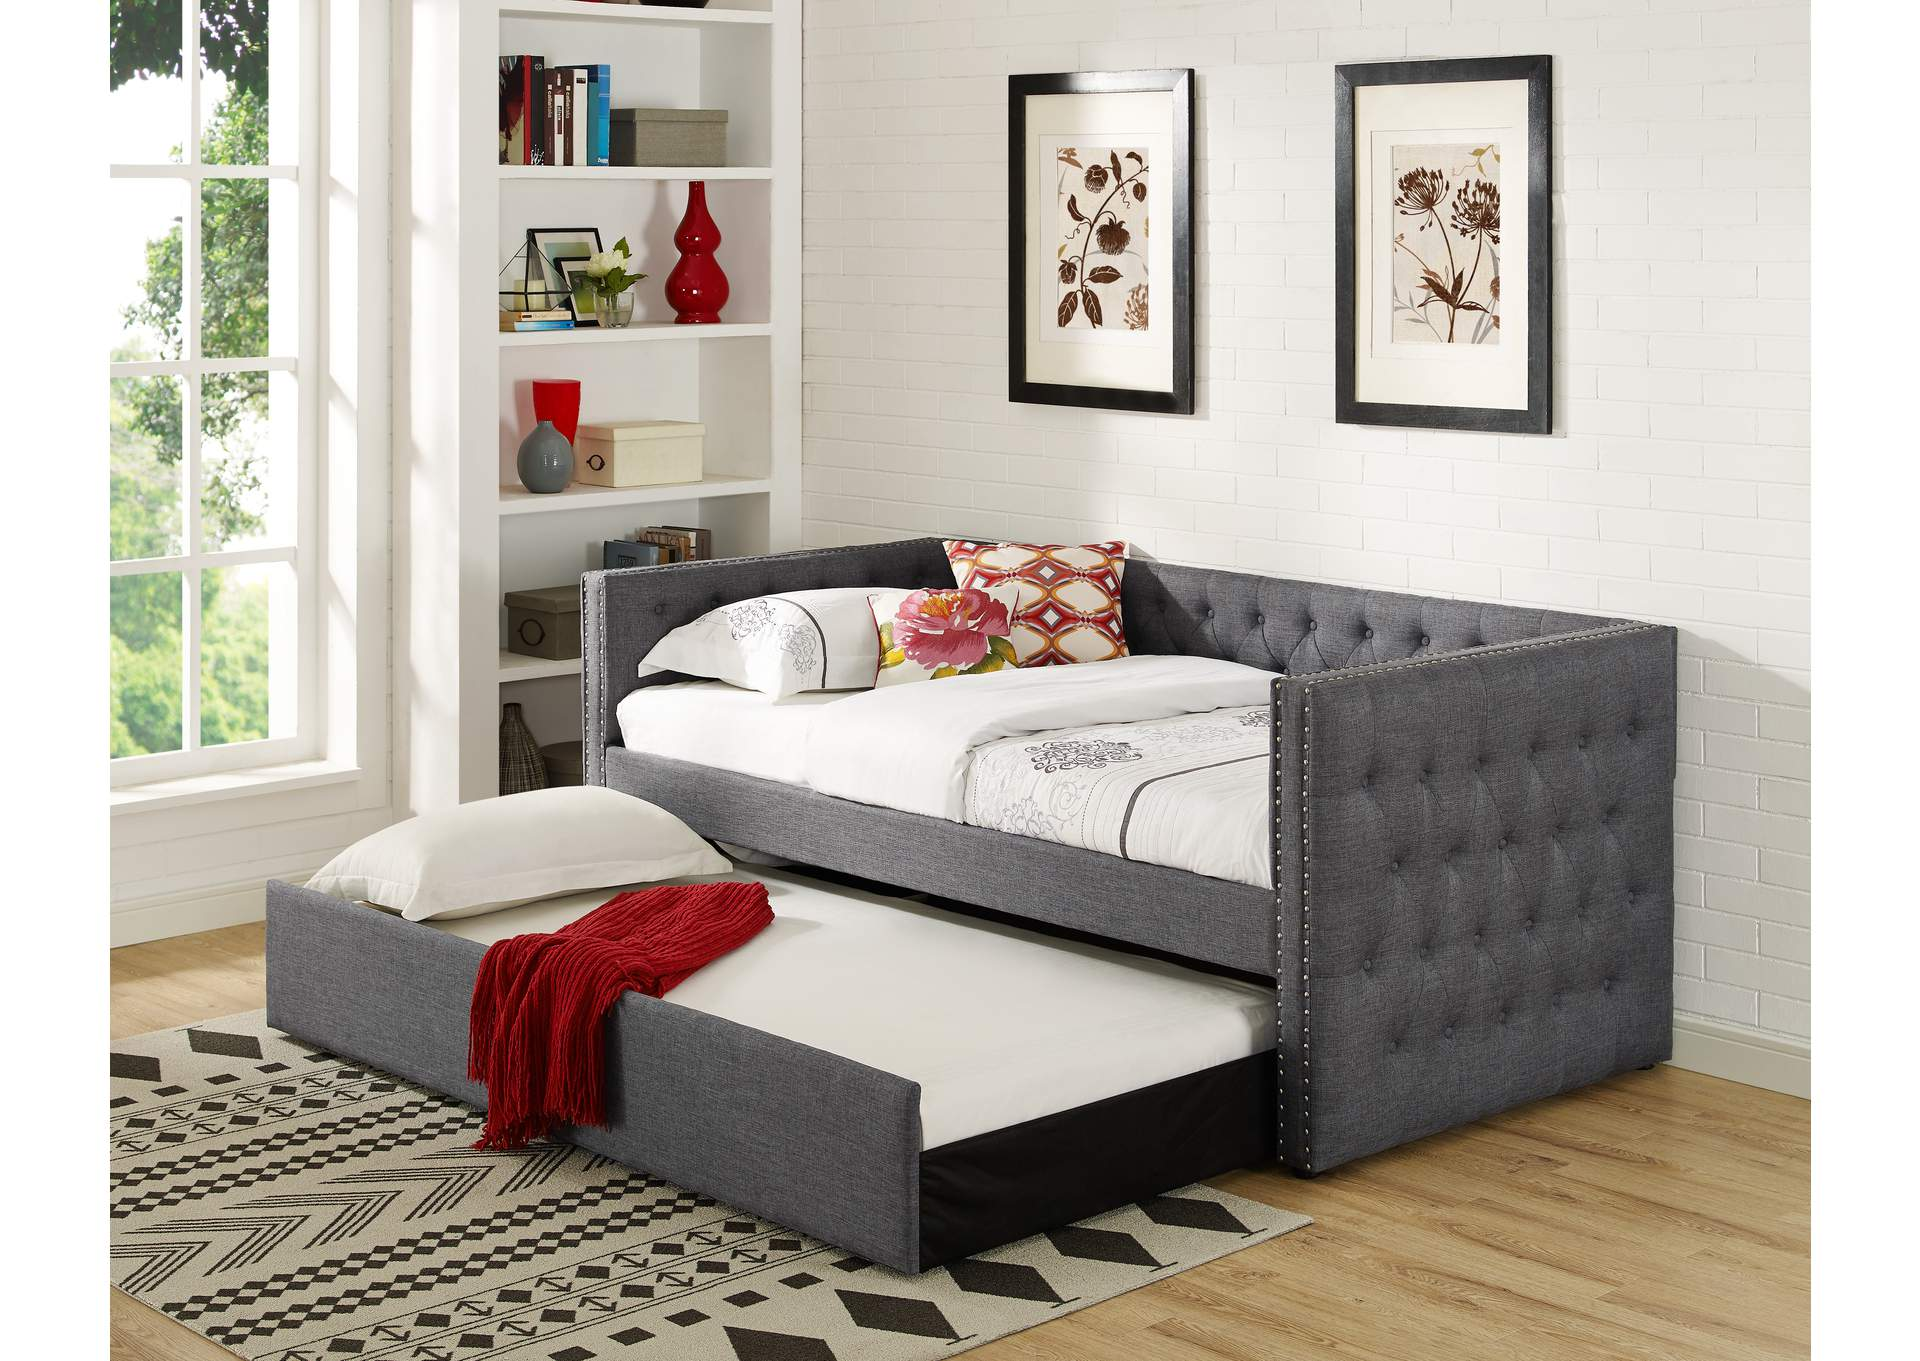 Trina Grey Upholstered Daybed,Crown Mark